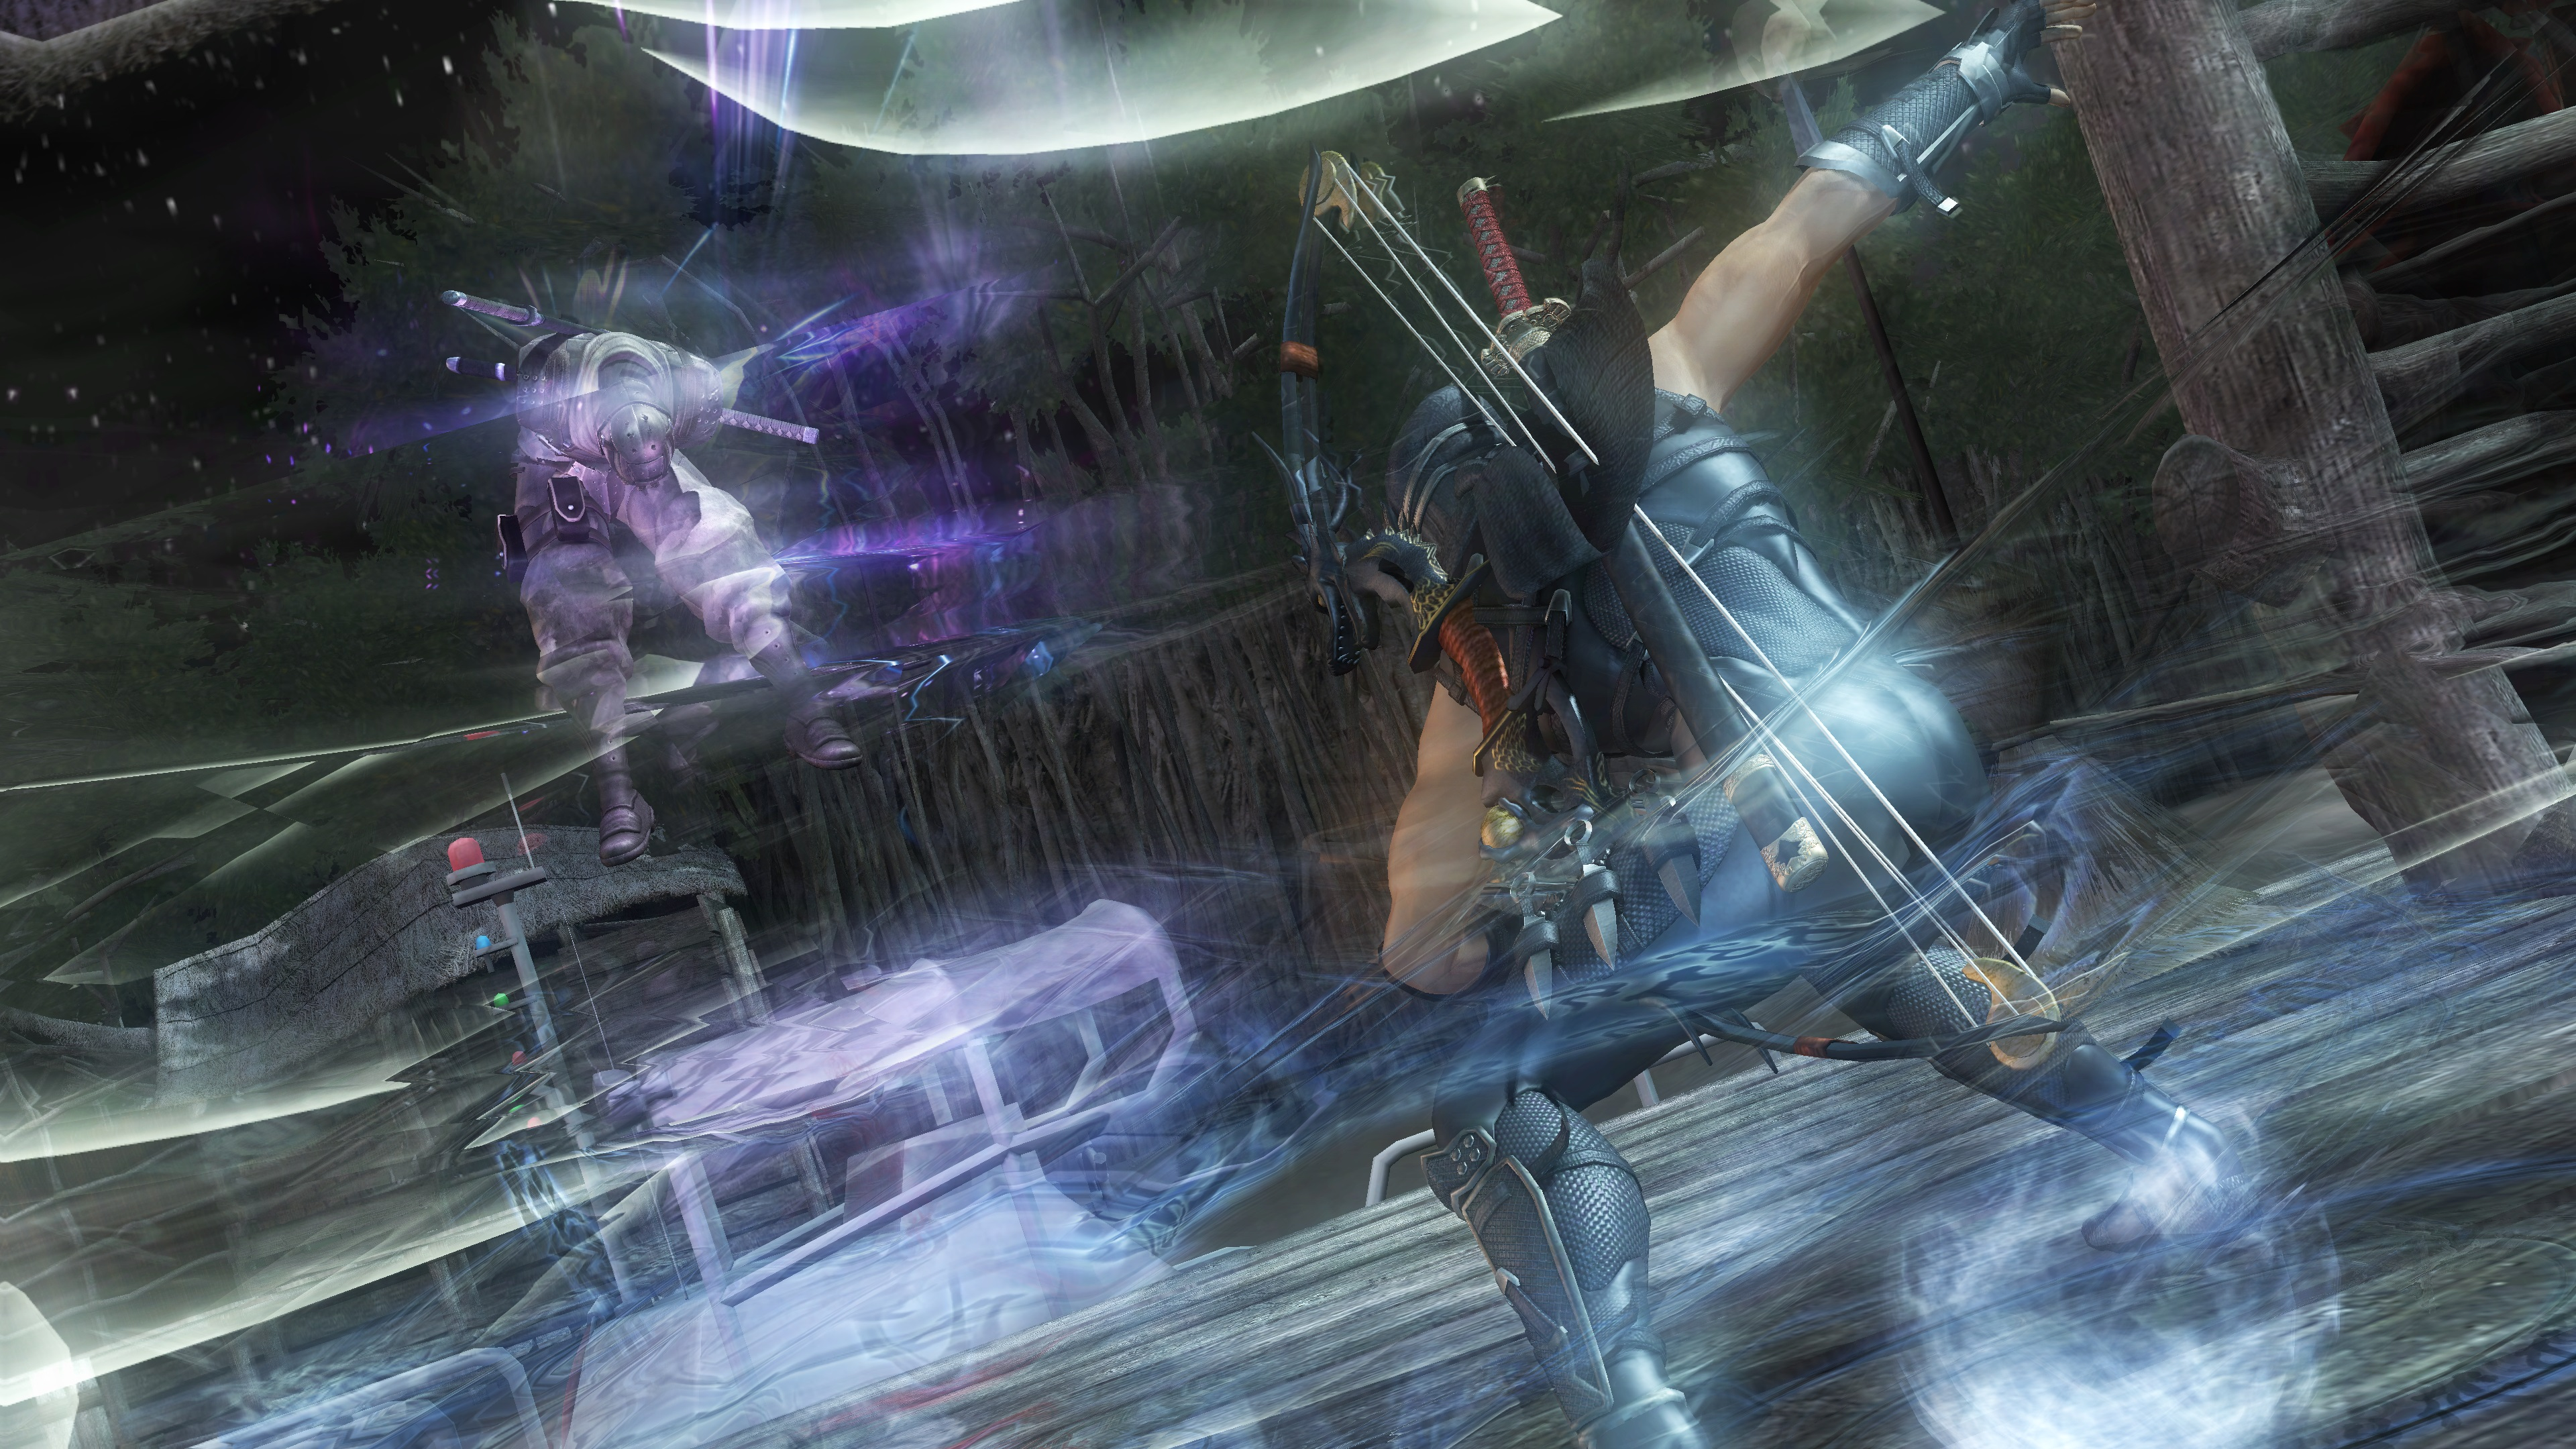 Ninja Gaiden: Master Collection producer says the third game is his favorite and the toughest, but is sure 'a lot of fans may not agree' screenshot